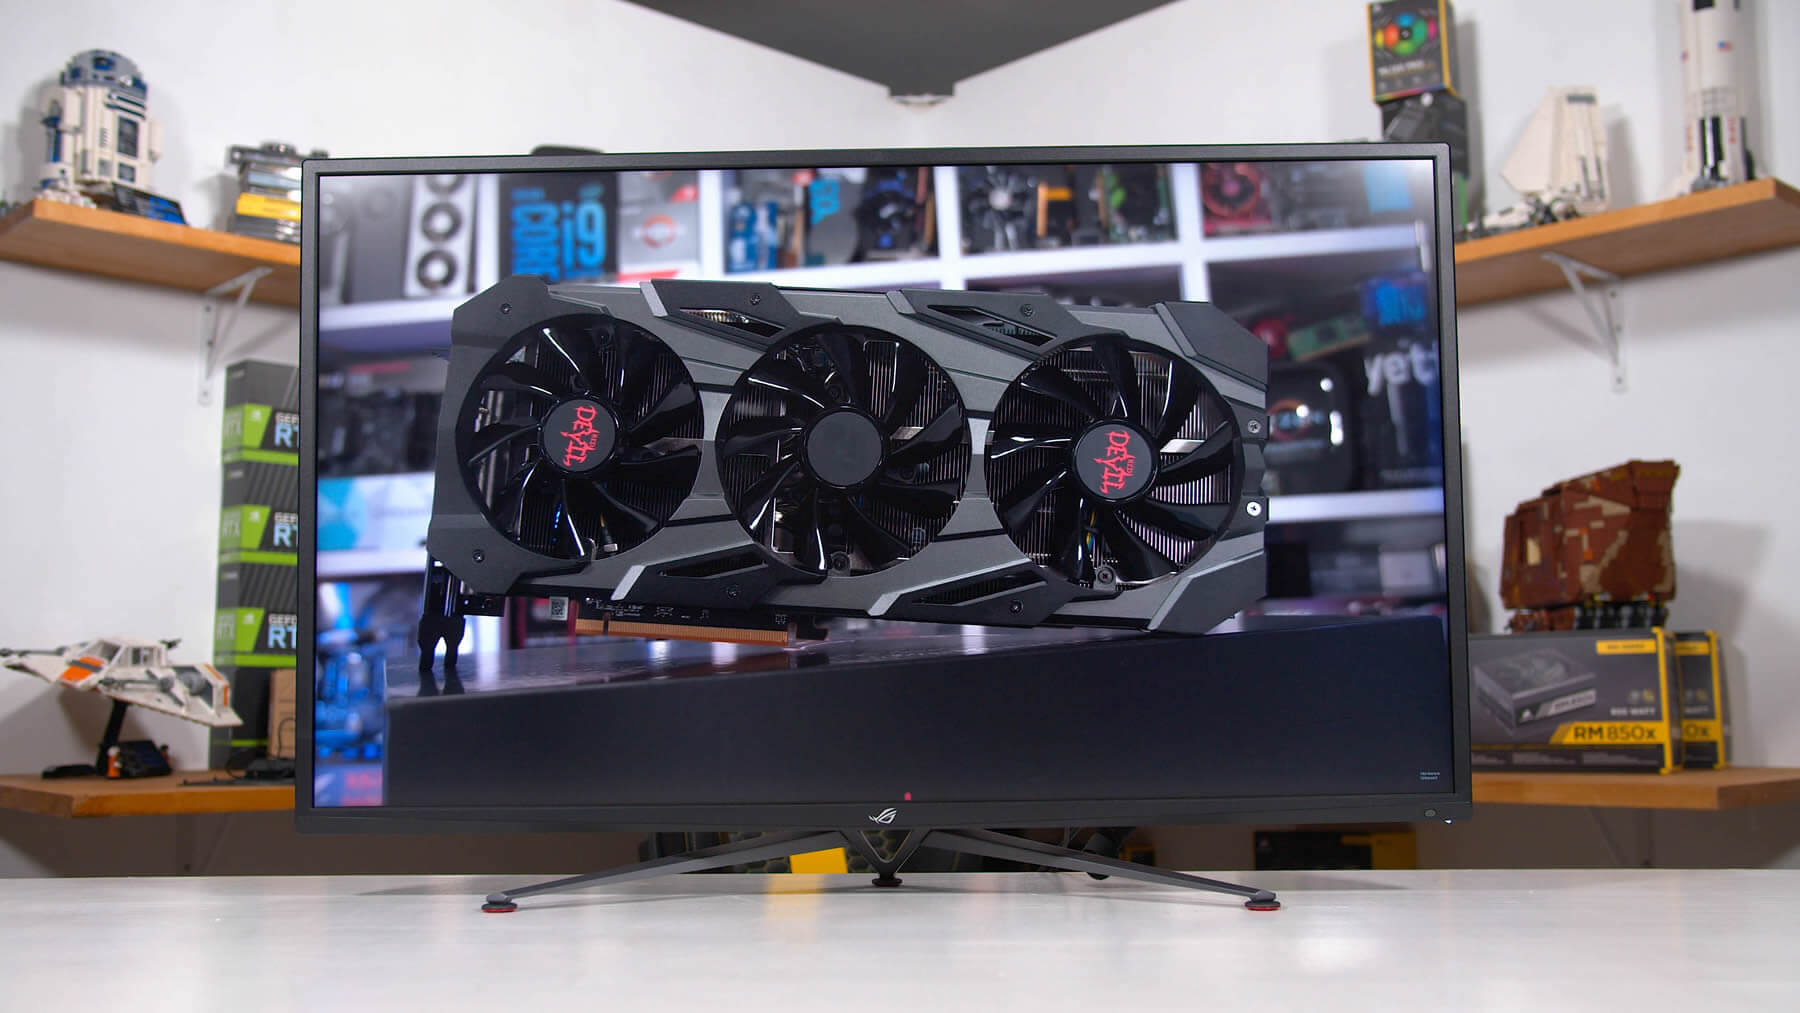 Asus ROG Strix XG438Q Review: A Massive 4K 120Hz Gaming